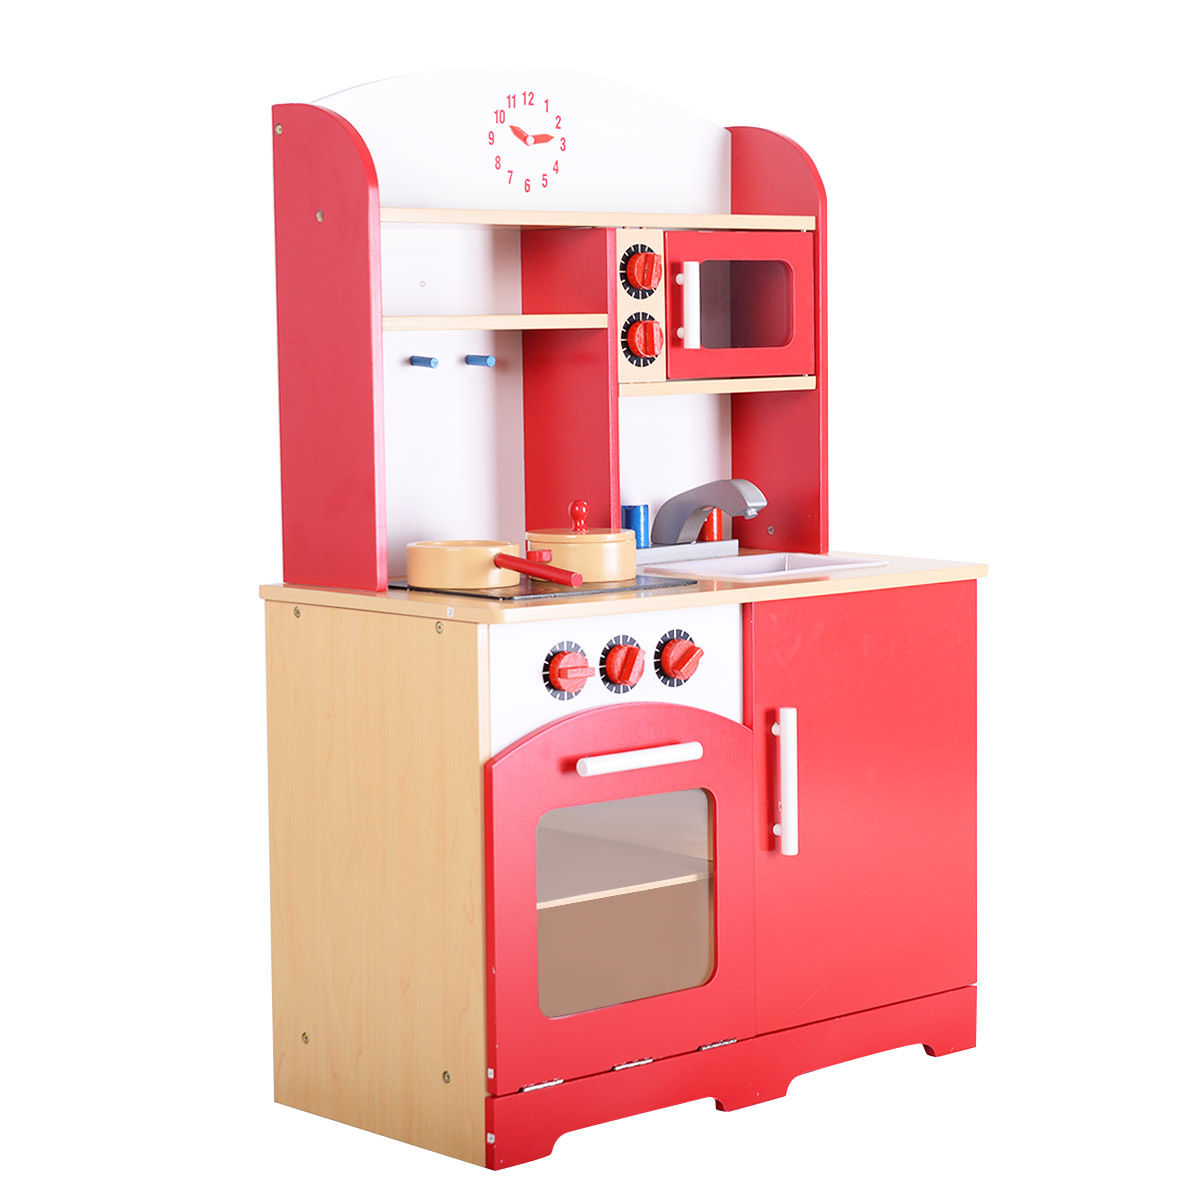 wooden kids kitchen cabinets glass doors wood toy cooking pretend play set toddler playset